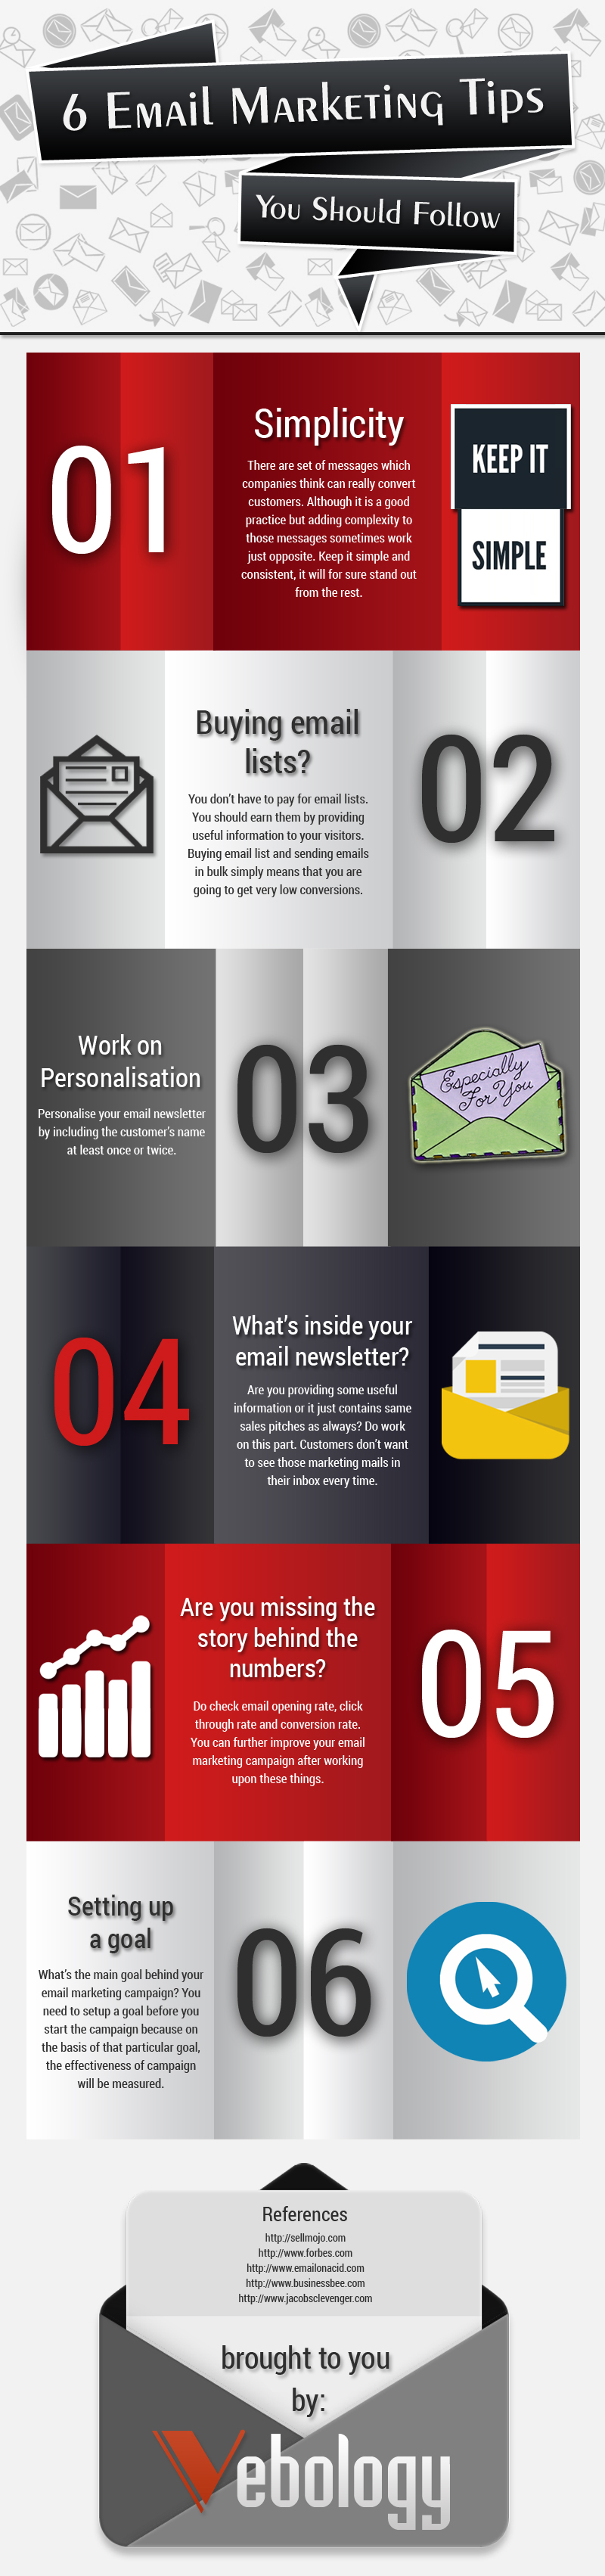 6 Email Marketing Tips You Should Follow